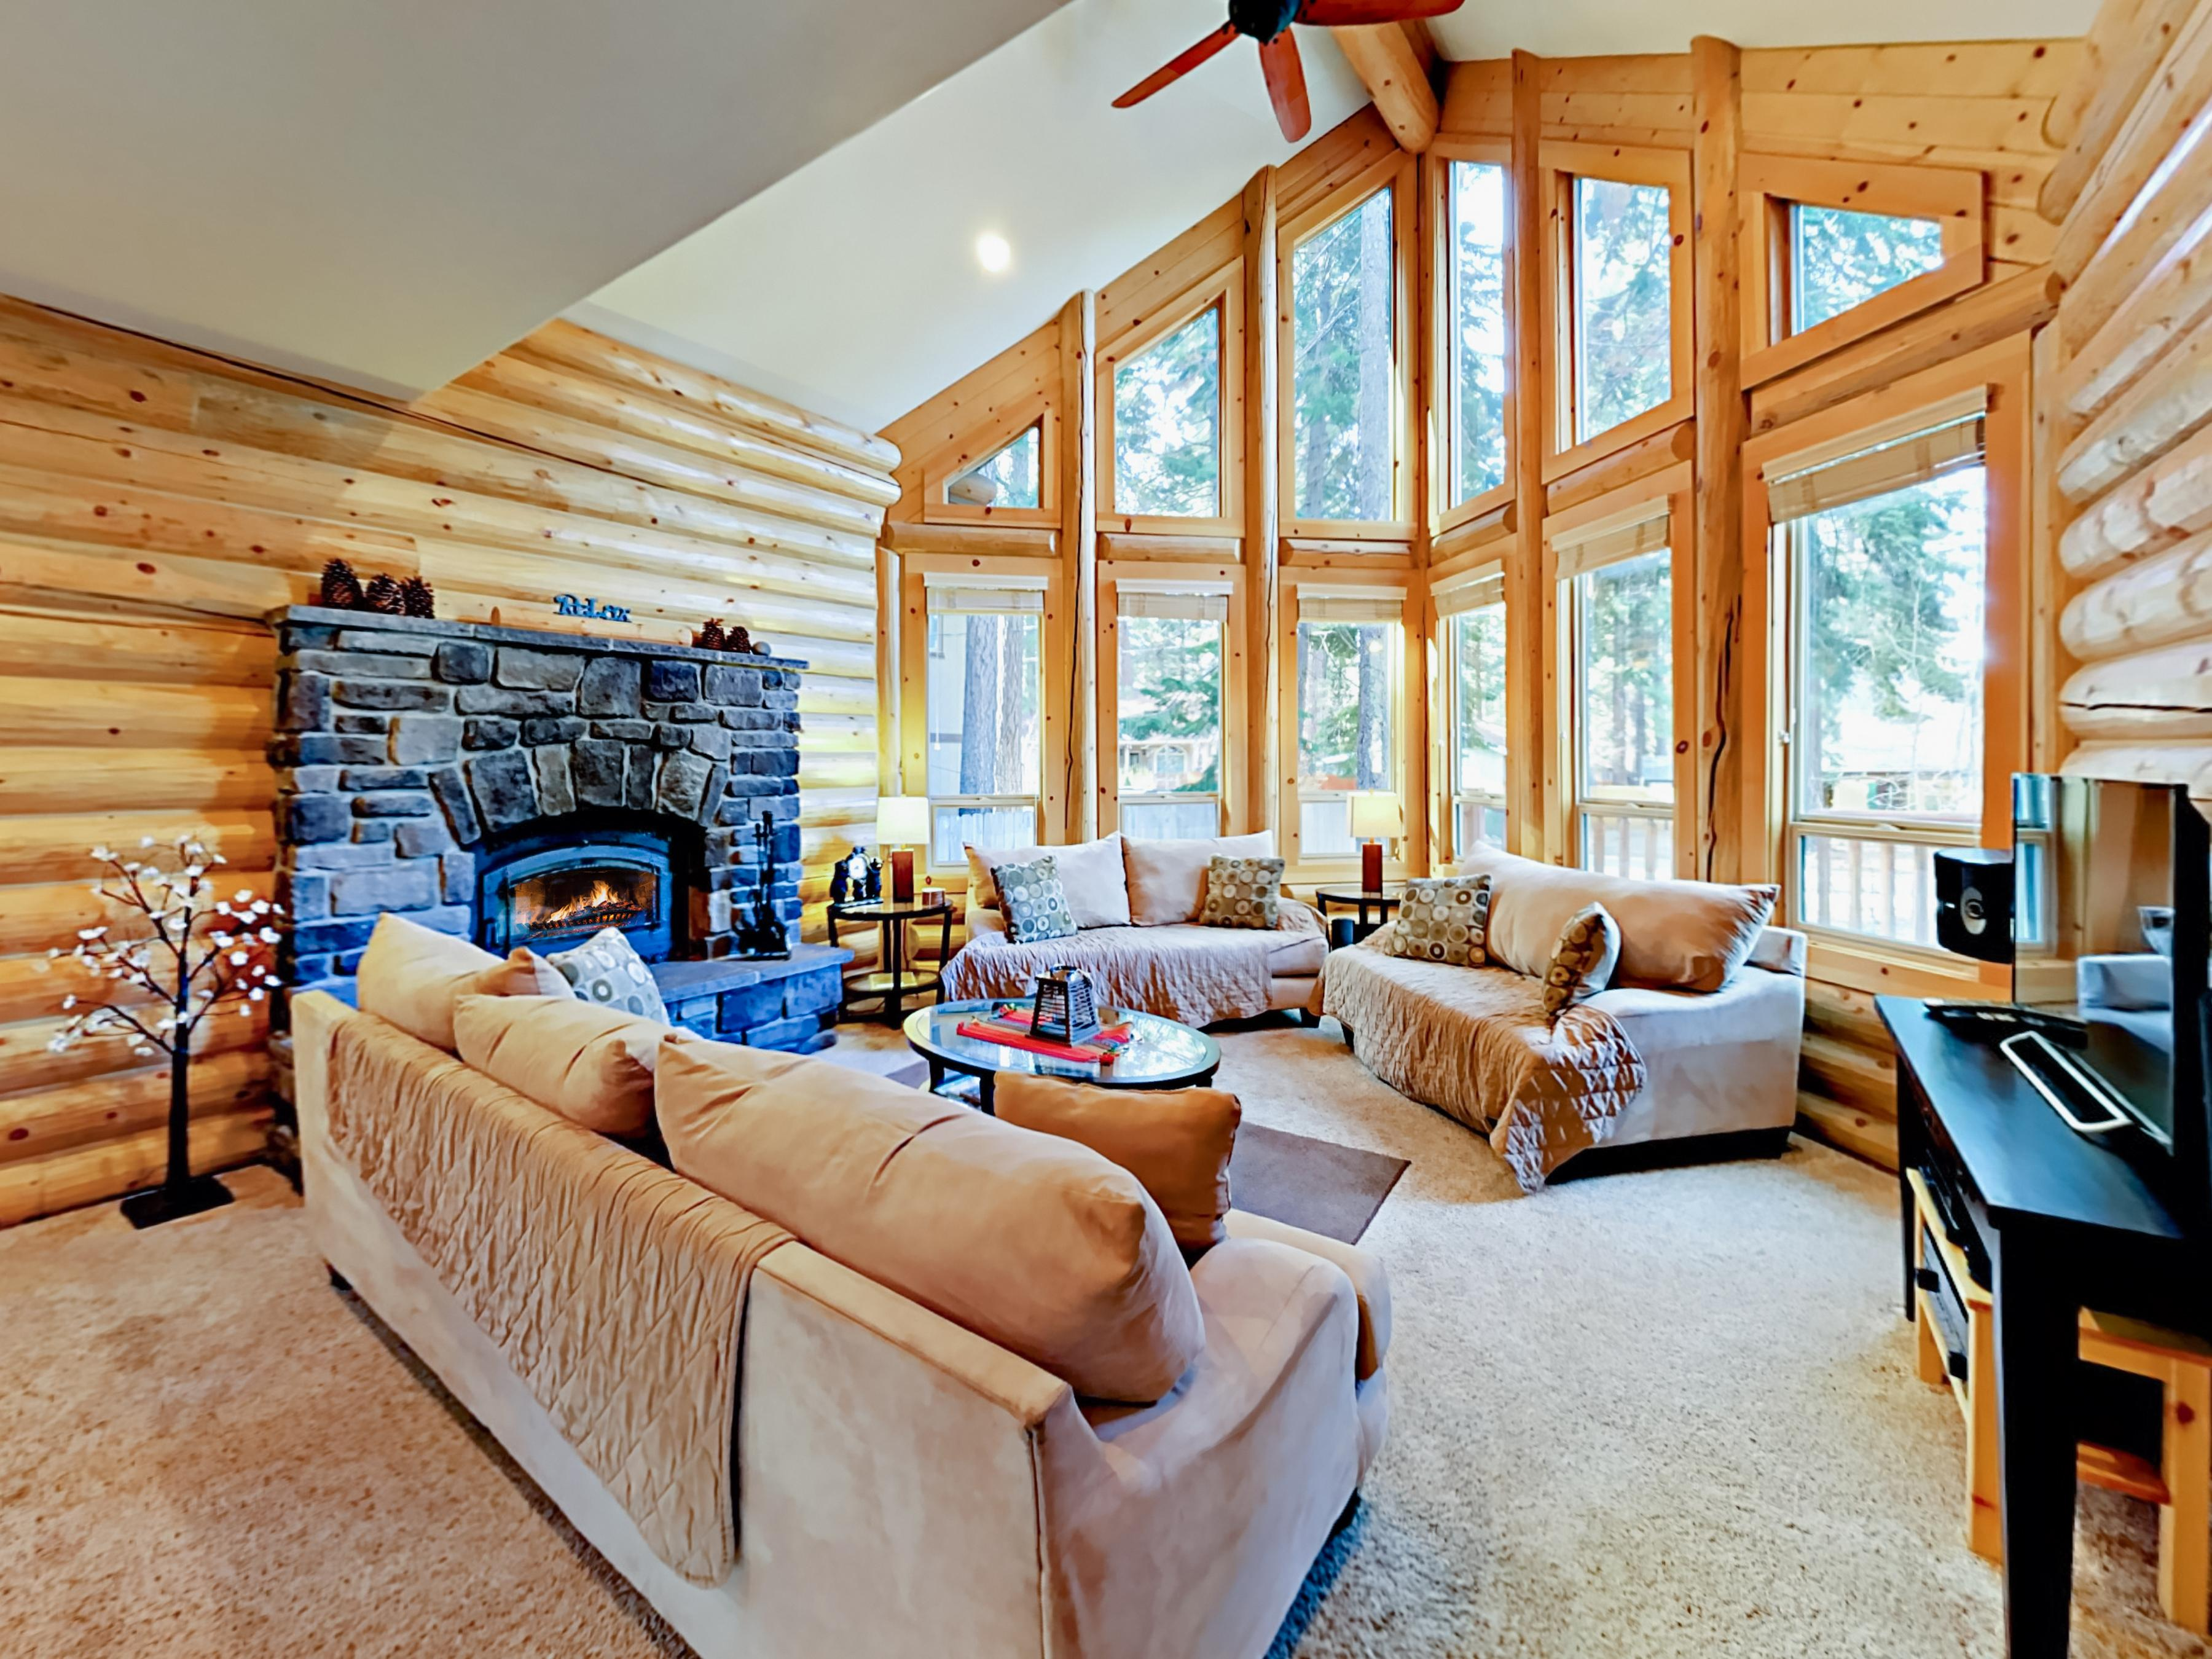 Welcome to South Lake Tahoe! This beautiful log home is professionally managed by TurnKey Vacation Rentals.